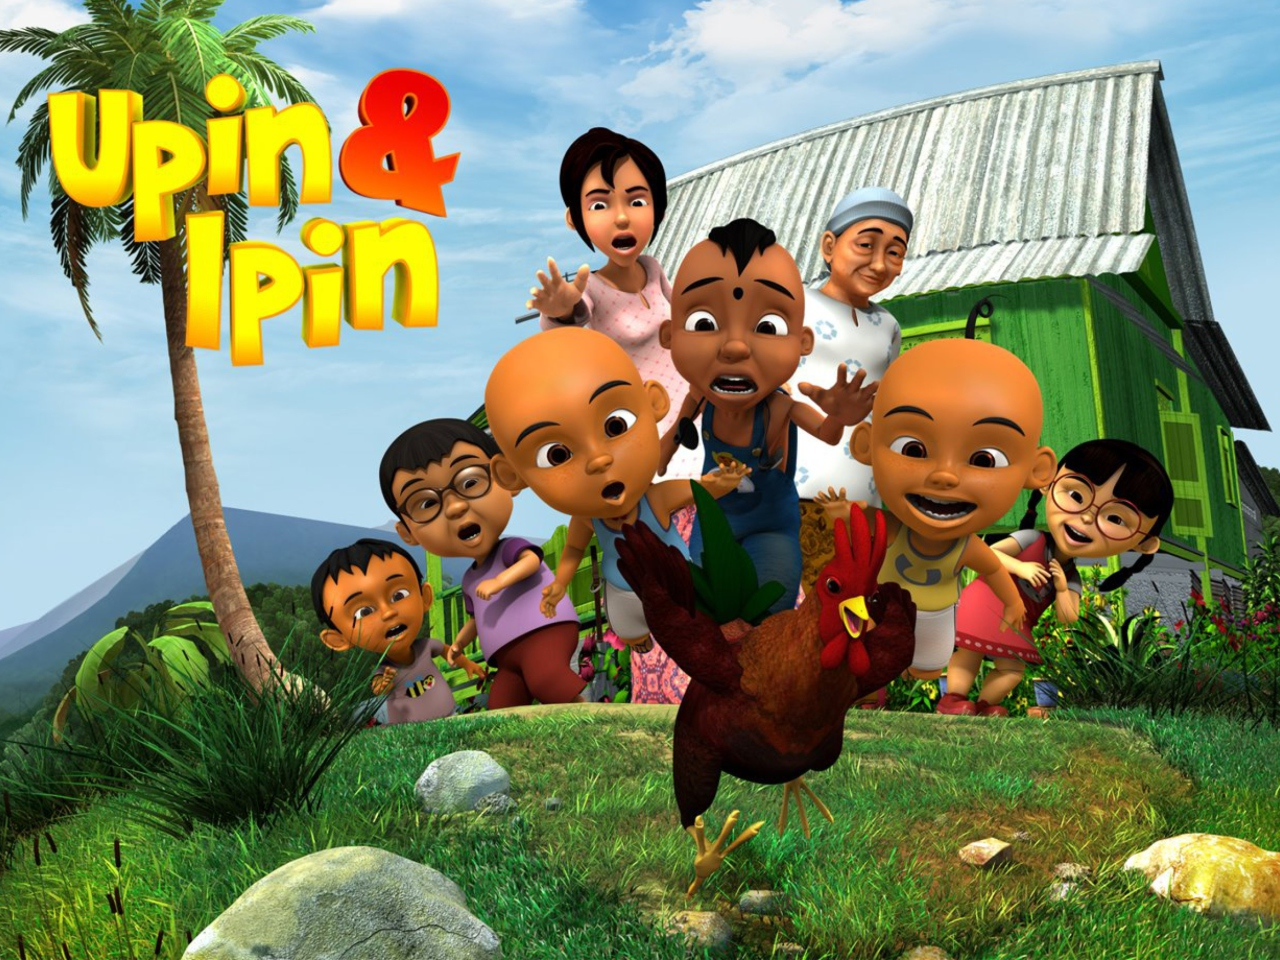 Das Upin & Ipin Wallpaper 1280x960